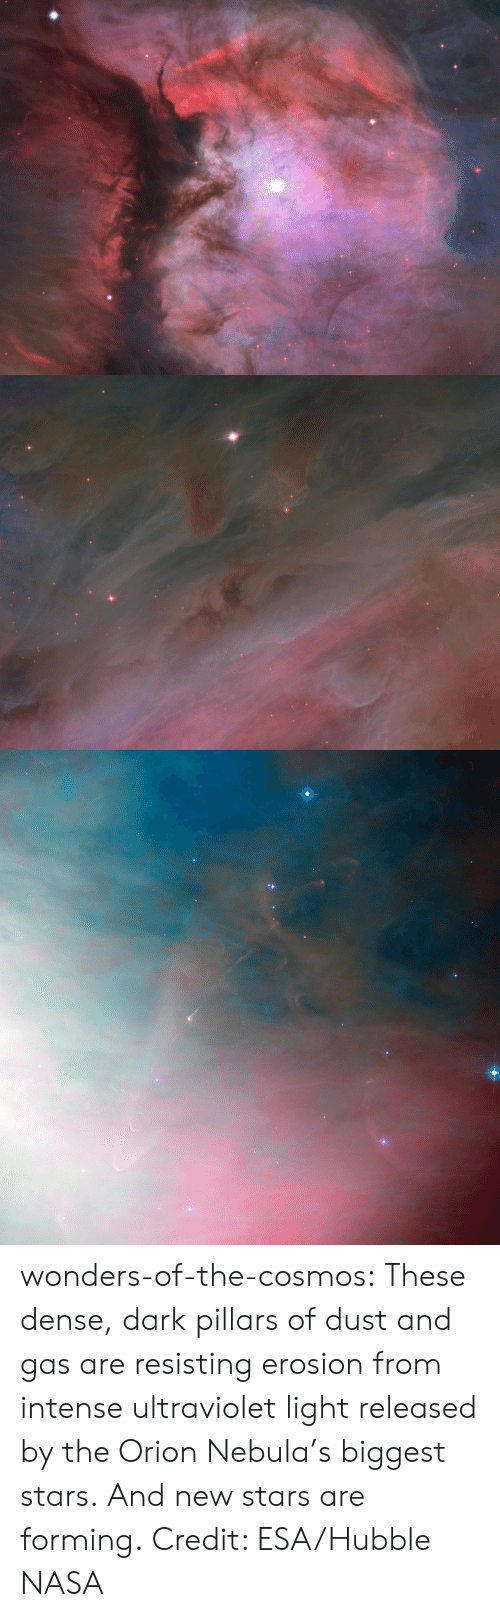 Nasa, Target, and Tumblr: wonders-of-the-cosmos:    These dense, dark pillars of dust and gas are resisting erosion from intense ultraviolet light released by the Orion Nebula's biggest stars. And new stars are forming. Credit: ESA/Hubble  NASA